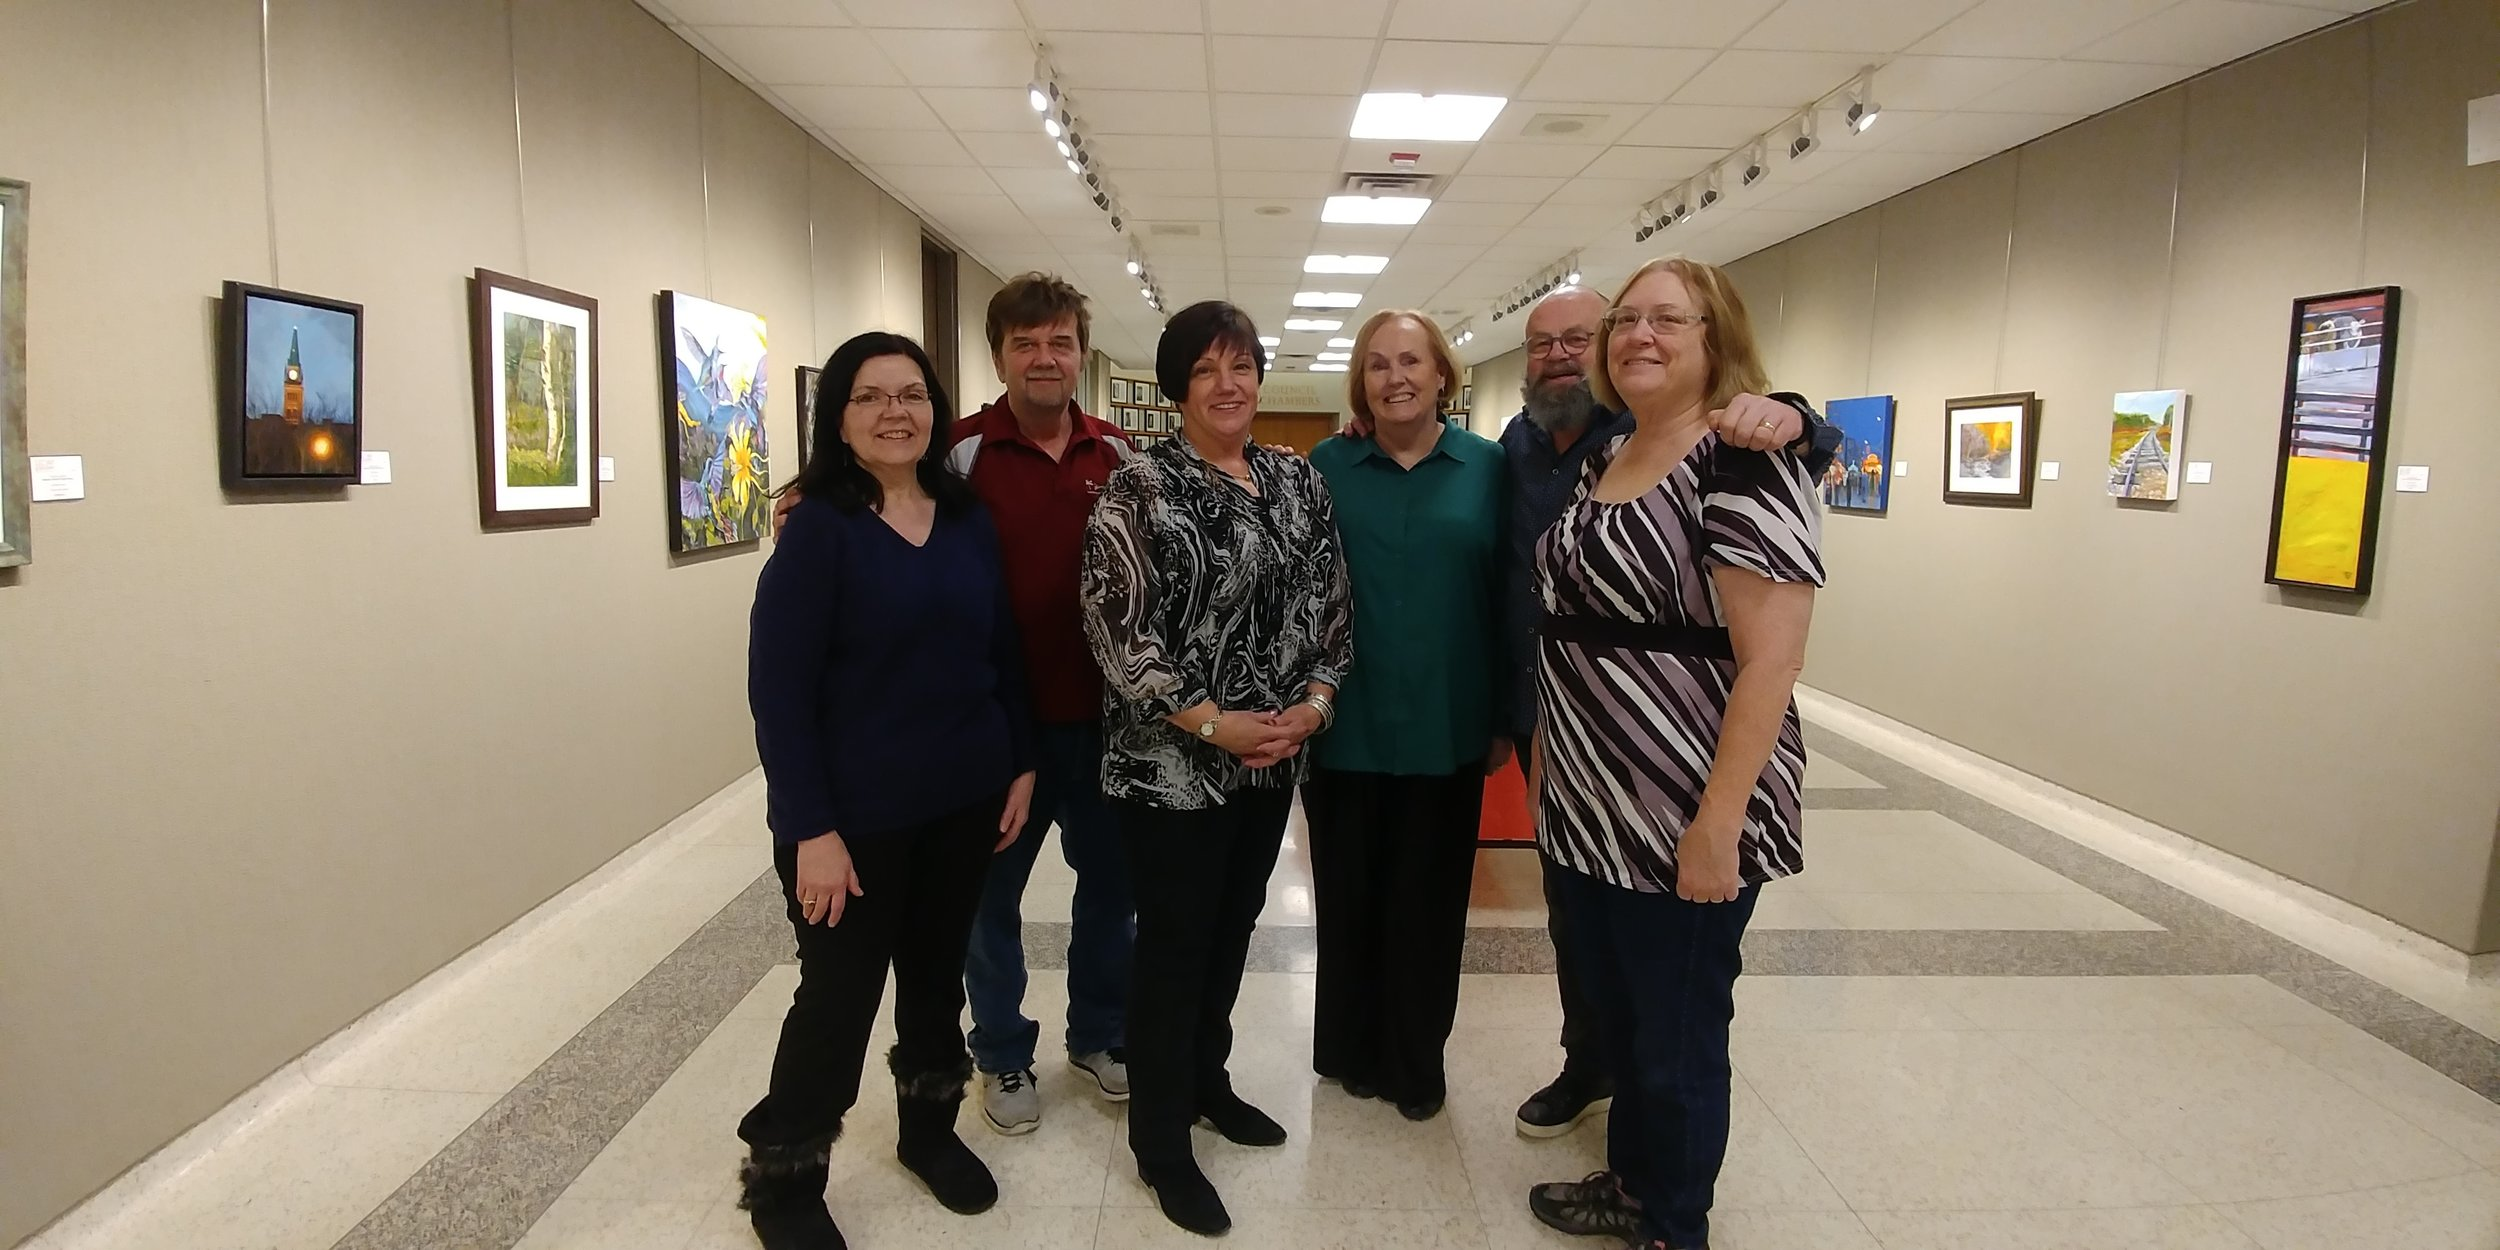 From left to right, SOVA artists , Margaret Pardy, Steve Wilson, Charlene Nickels, Helen Duplassie, Robert Chisholm, and myself, Lynden Cowan.